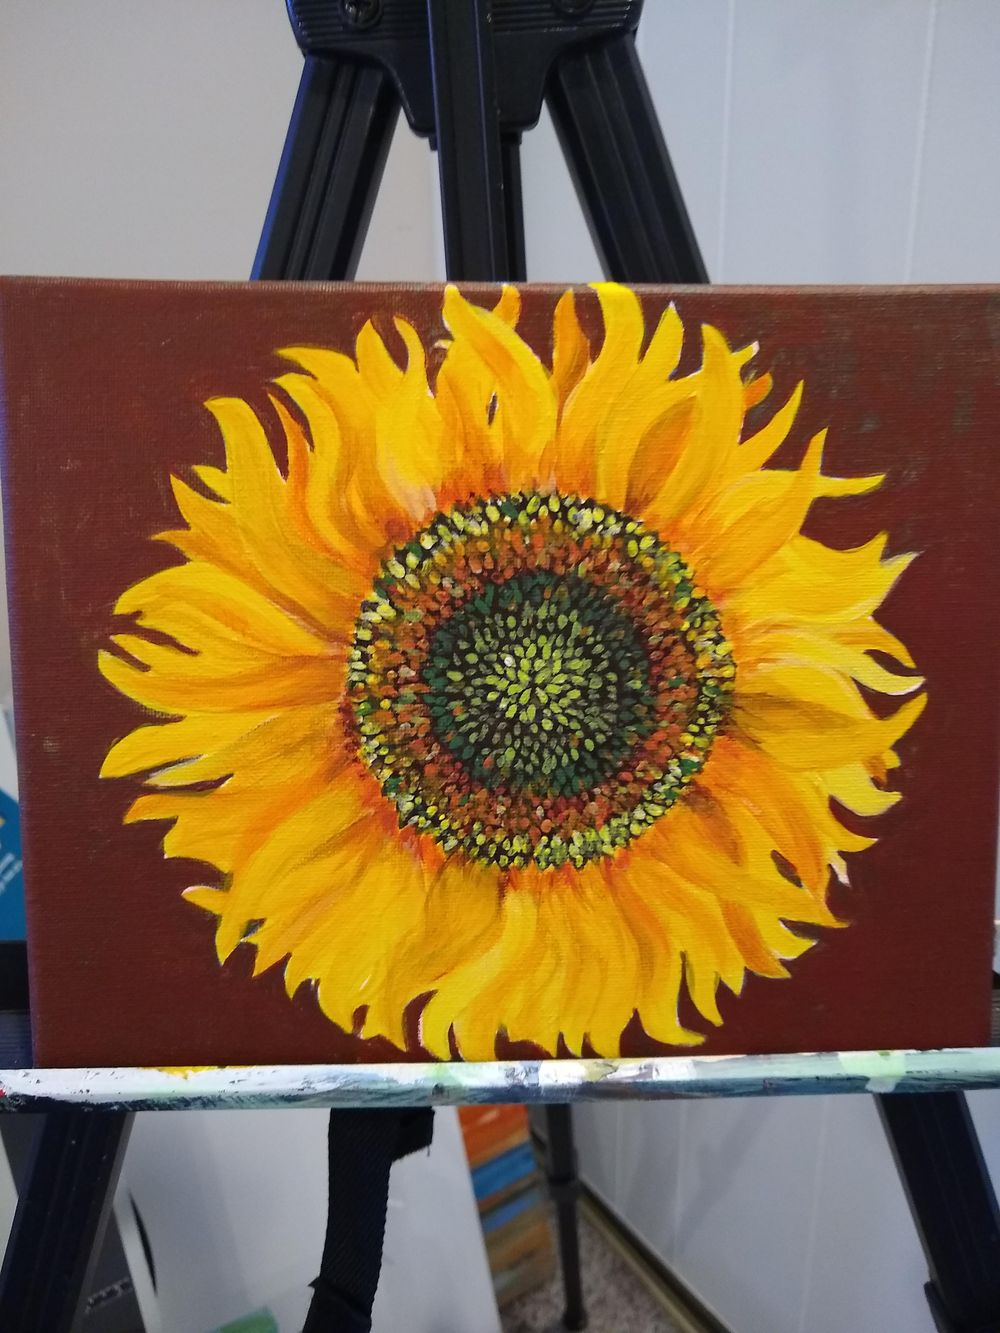 Sunflower Paintings - image 1 - student project